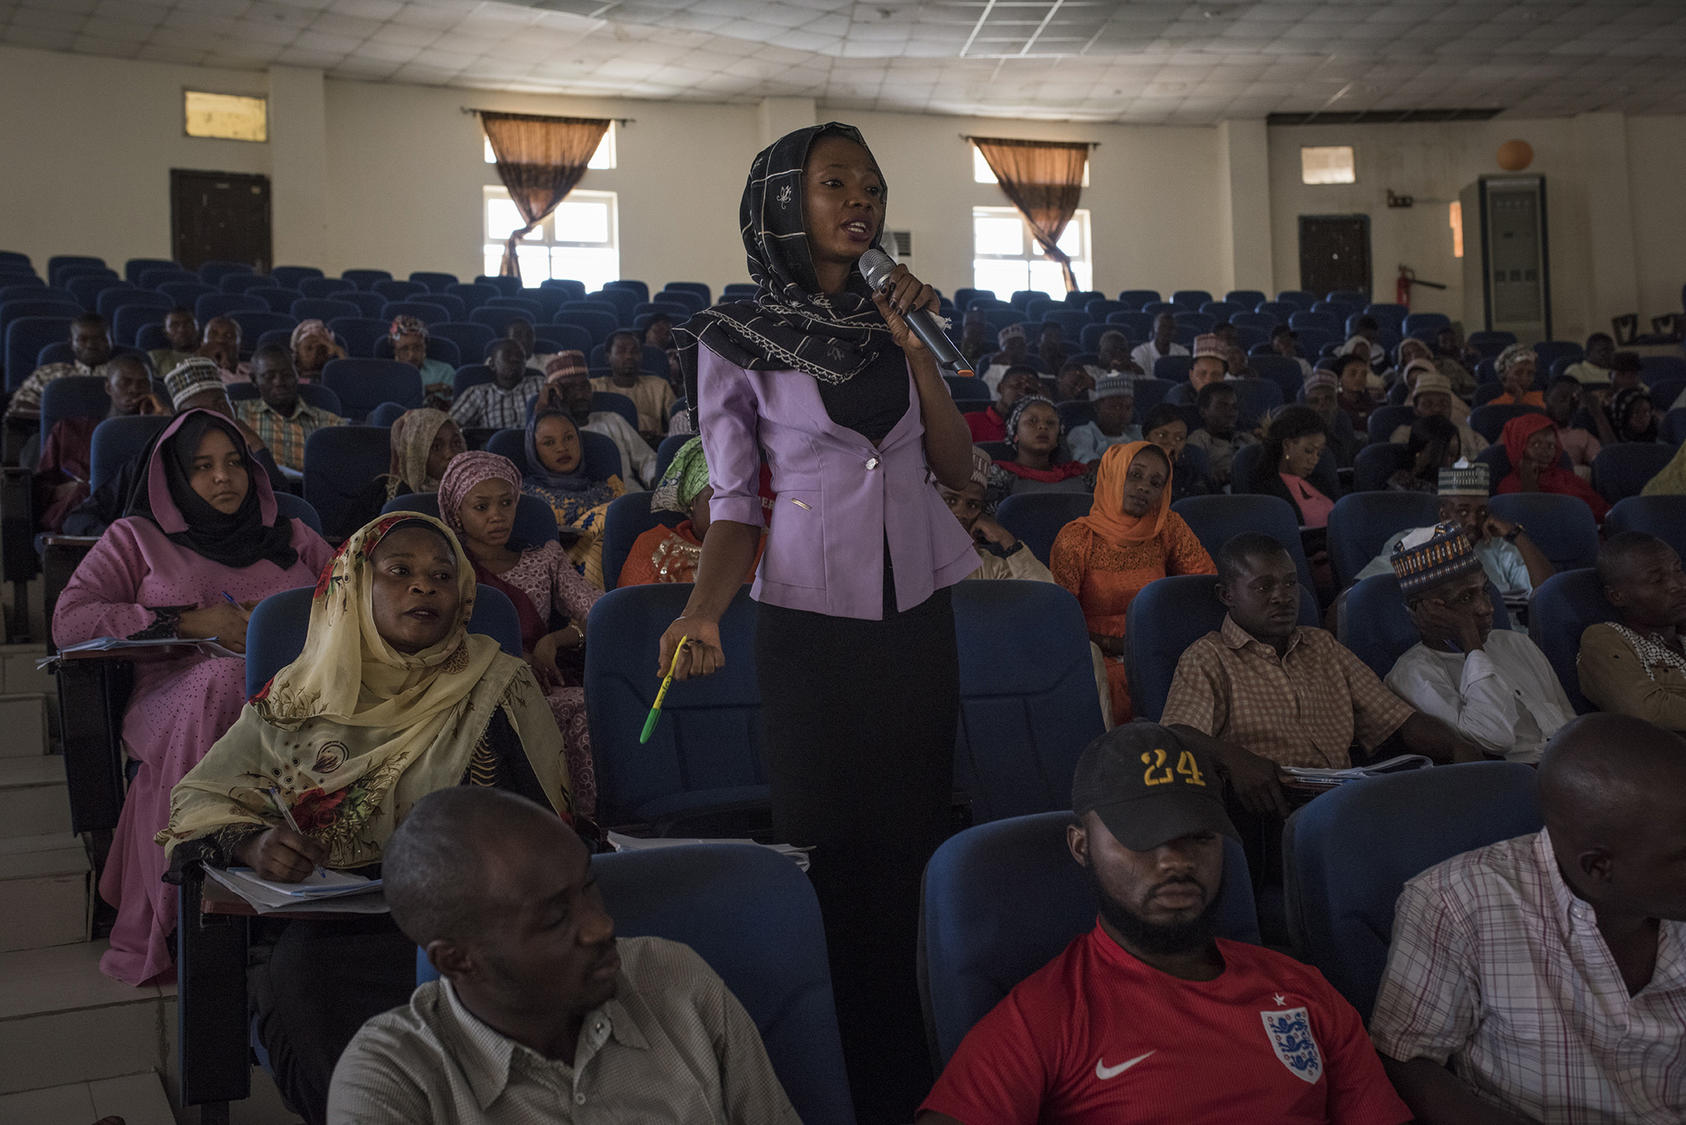 A student participates in a discussion during a gender ethics class at the University of Maiduguri, in Nigeria, Dec. 2, 2017. (Adam Ferguson/The New York Times)